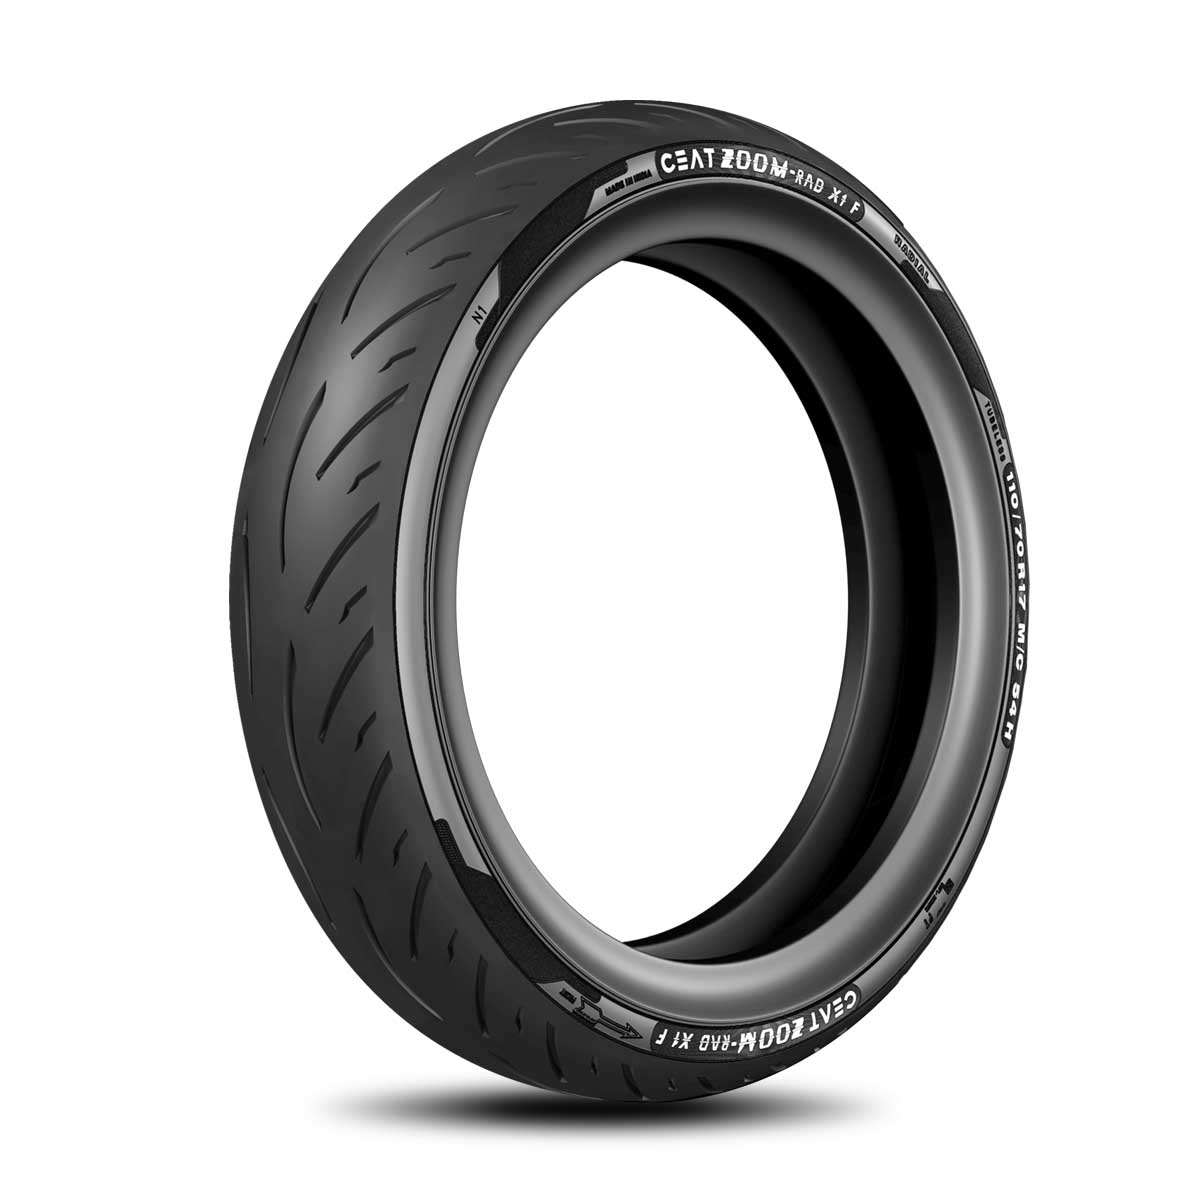 CEAT Rad X1 110/70 ZR17 Tubeless 54 H Front Two-Wheeler Tyre